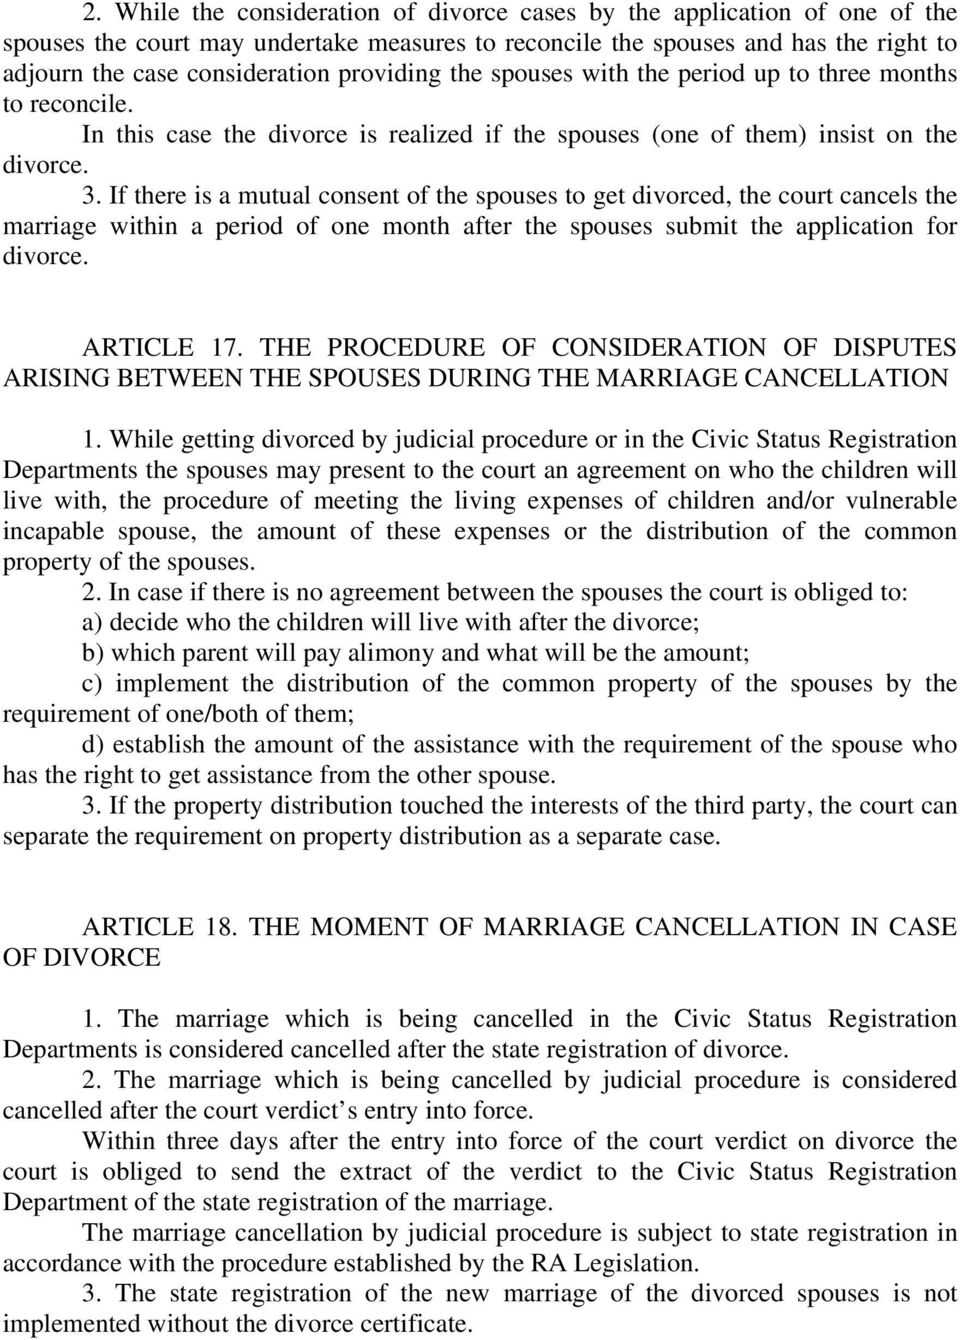 If there is a mutual consent of the spouses to get divorced, the court cancels the marriage within a period of one month after the spouses submit the application for divorce. ARTICLE 17.